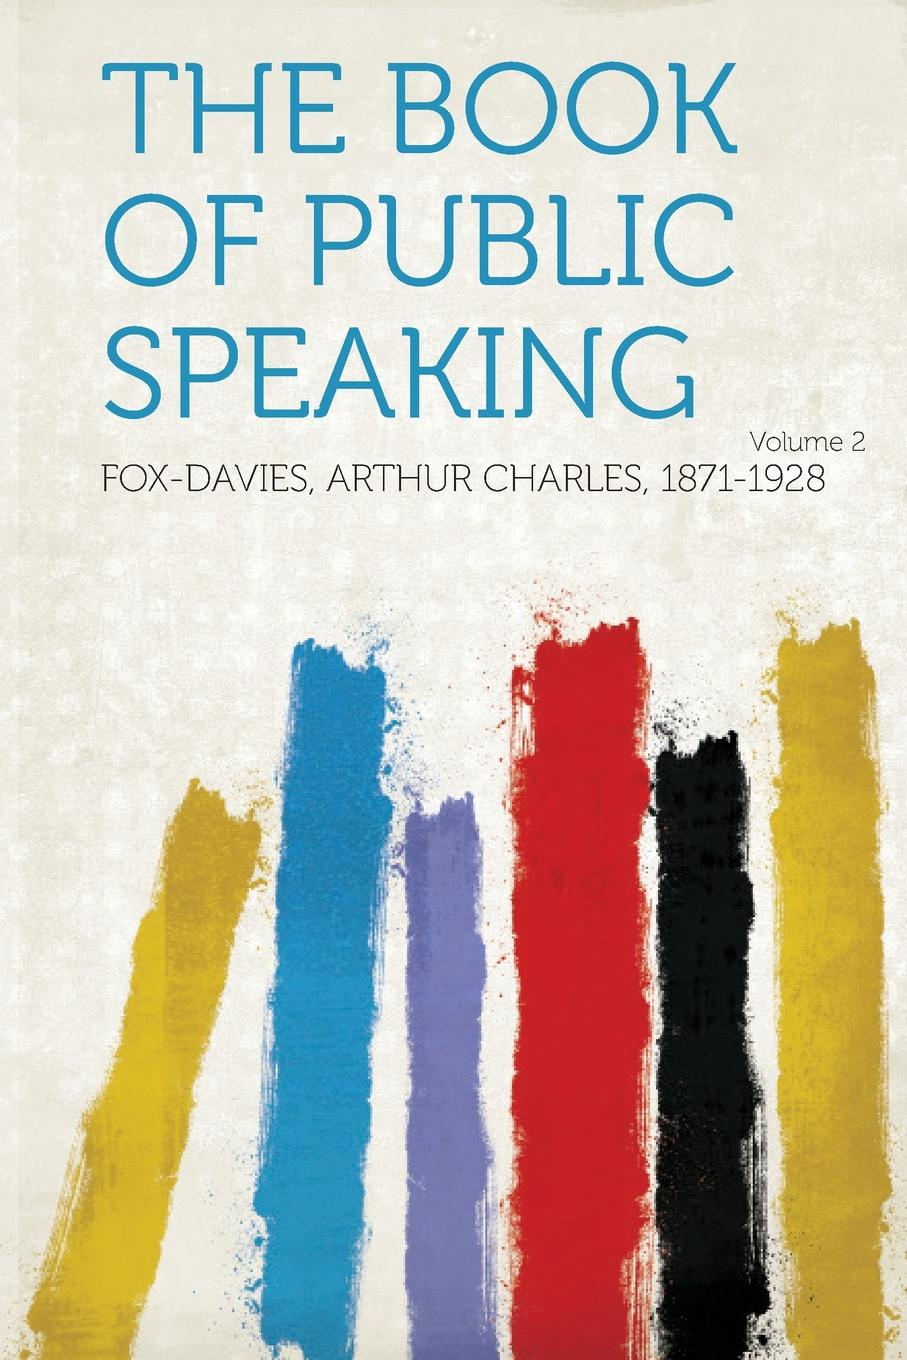 Fox-Davies Arthur Charles 1871-1928 The Book of Public Speaking Volume 2